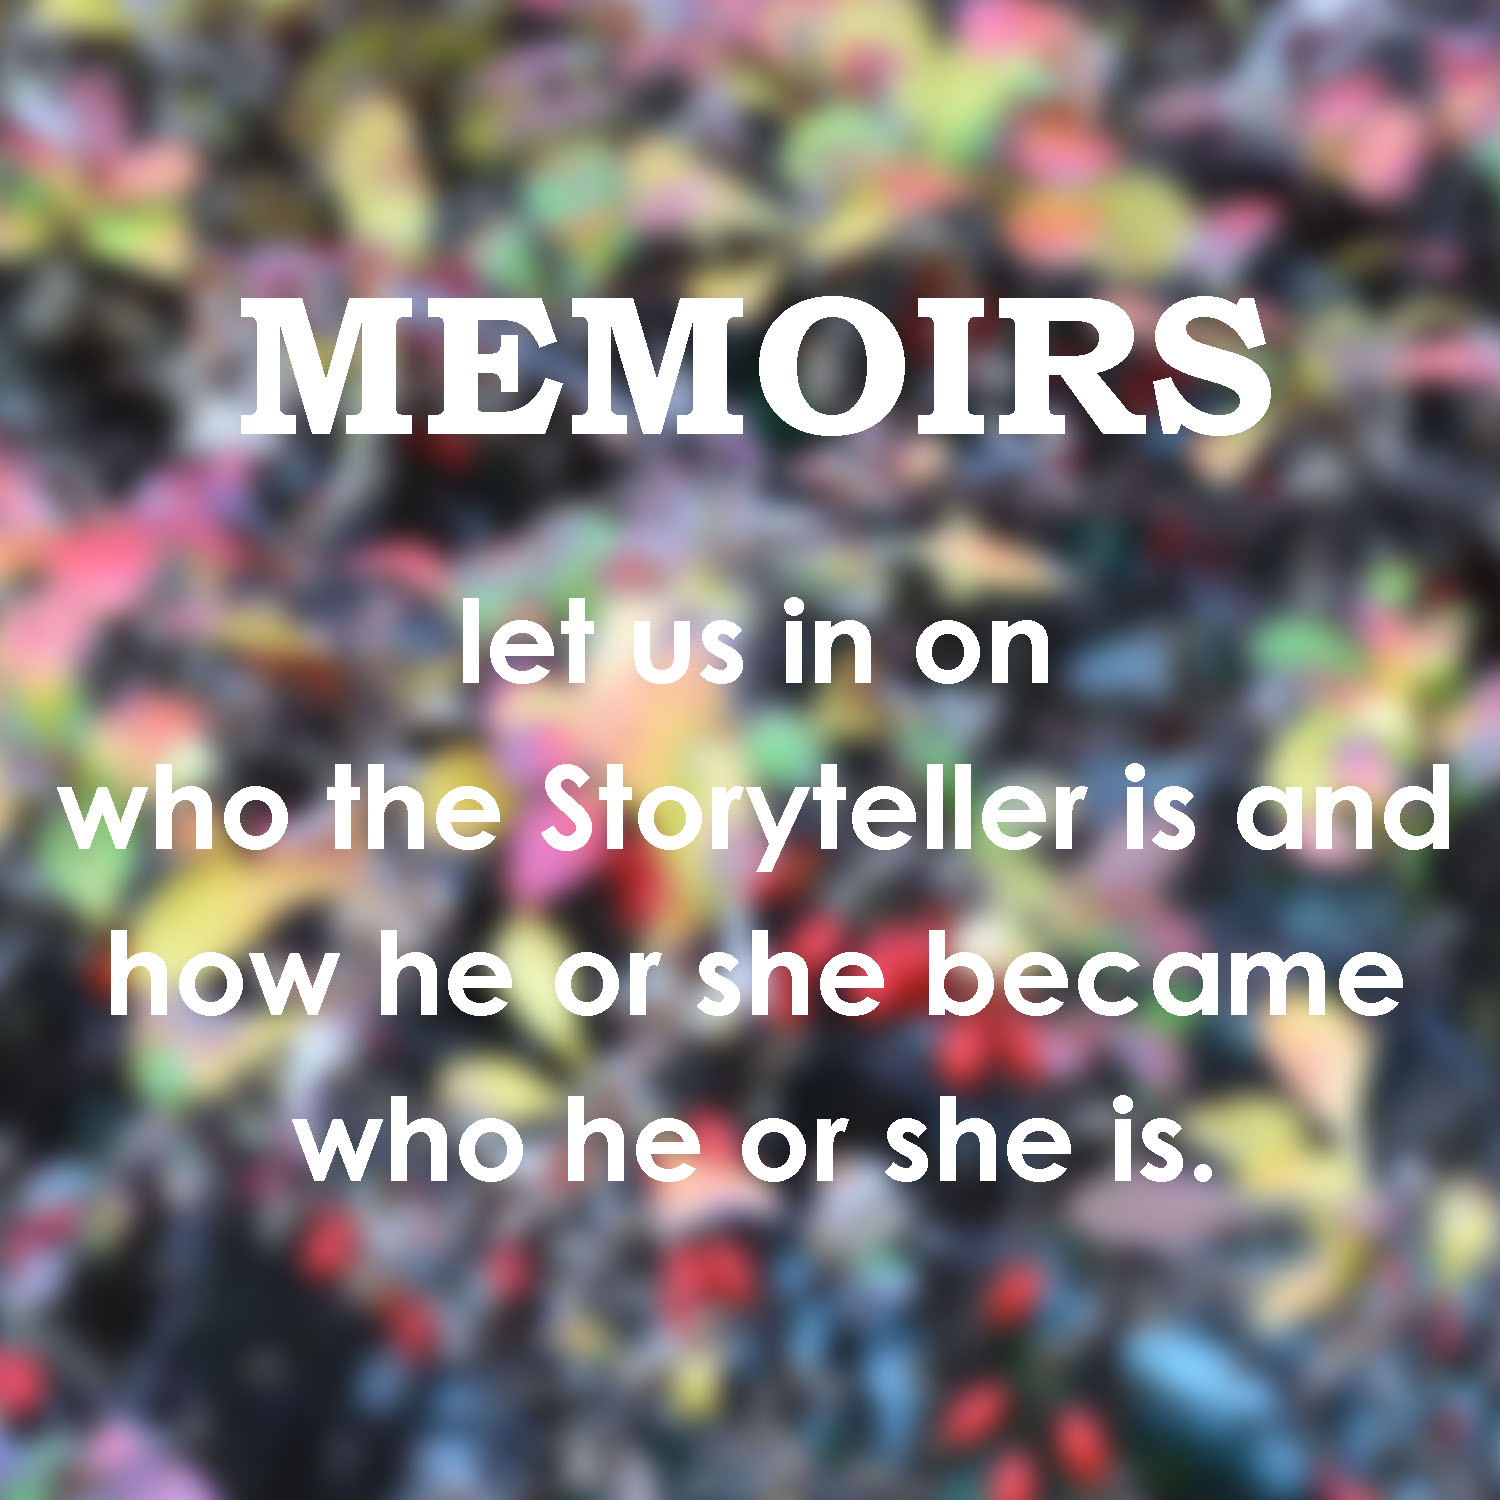 What's a memoir? Memoirs let us in on who the Storyteller is...